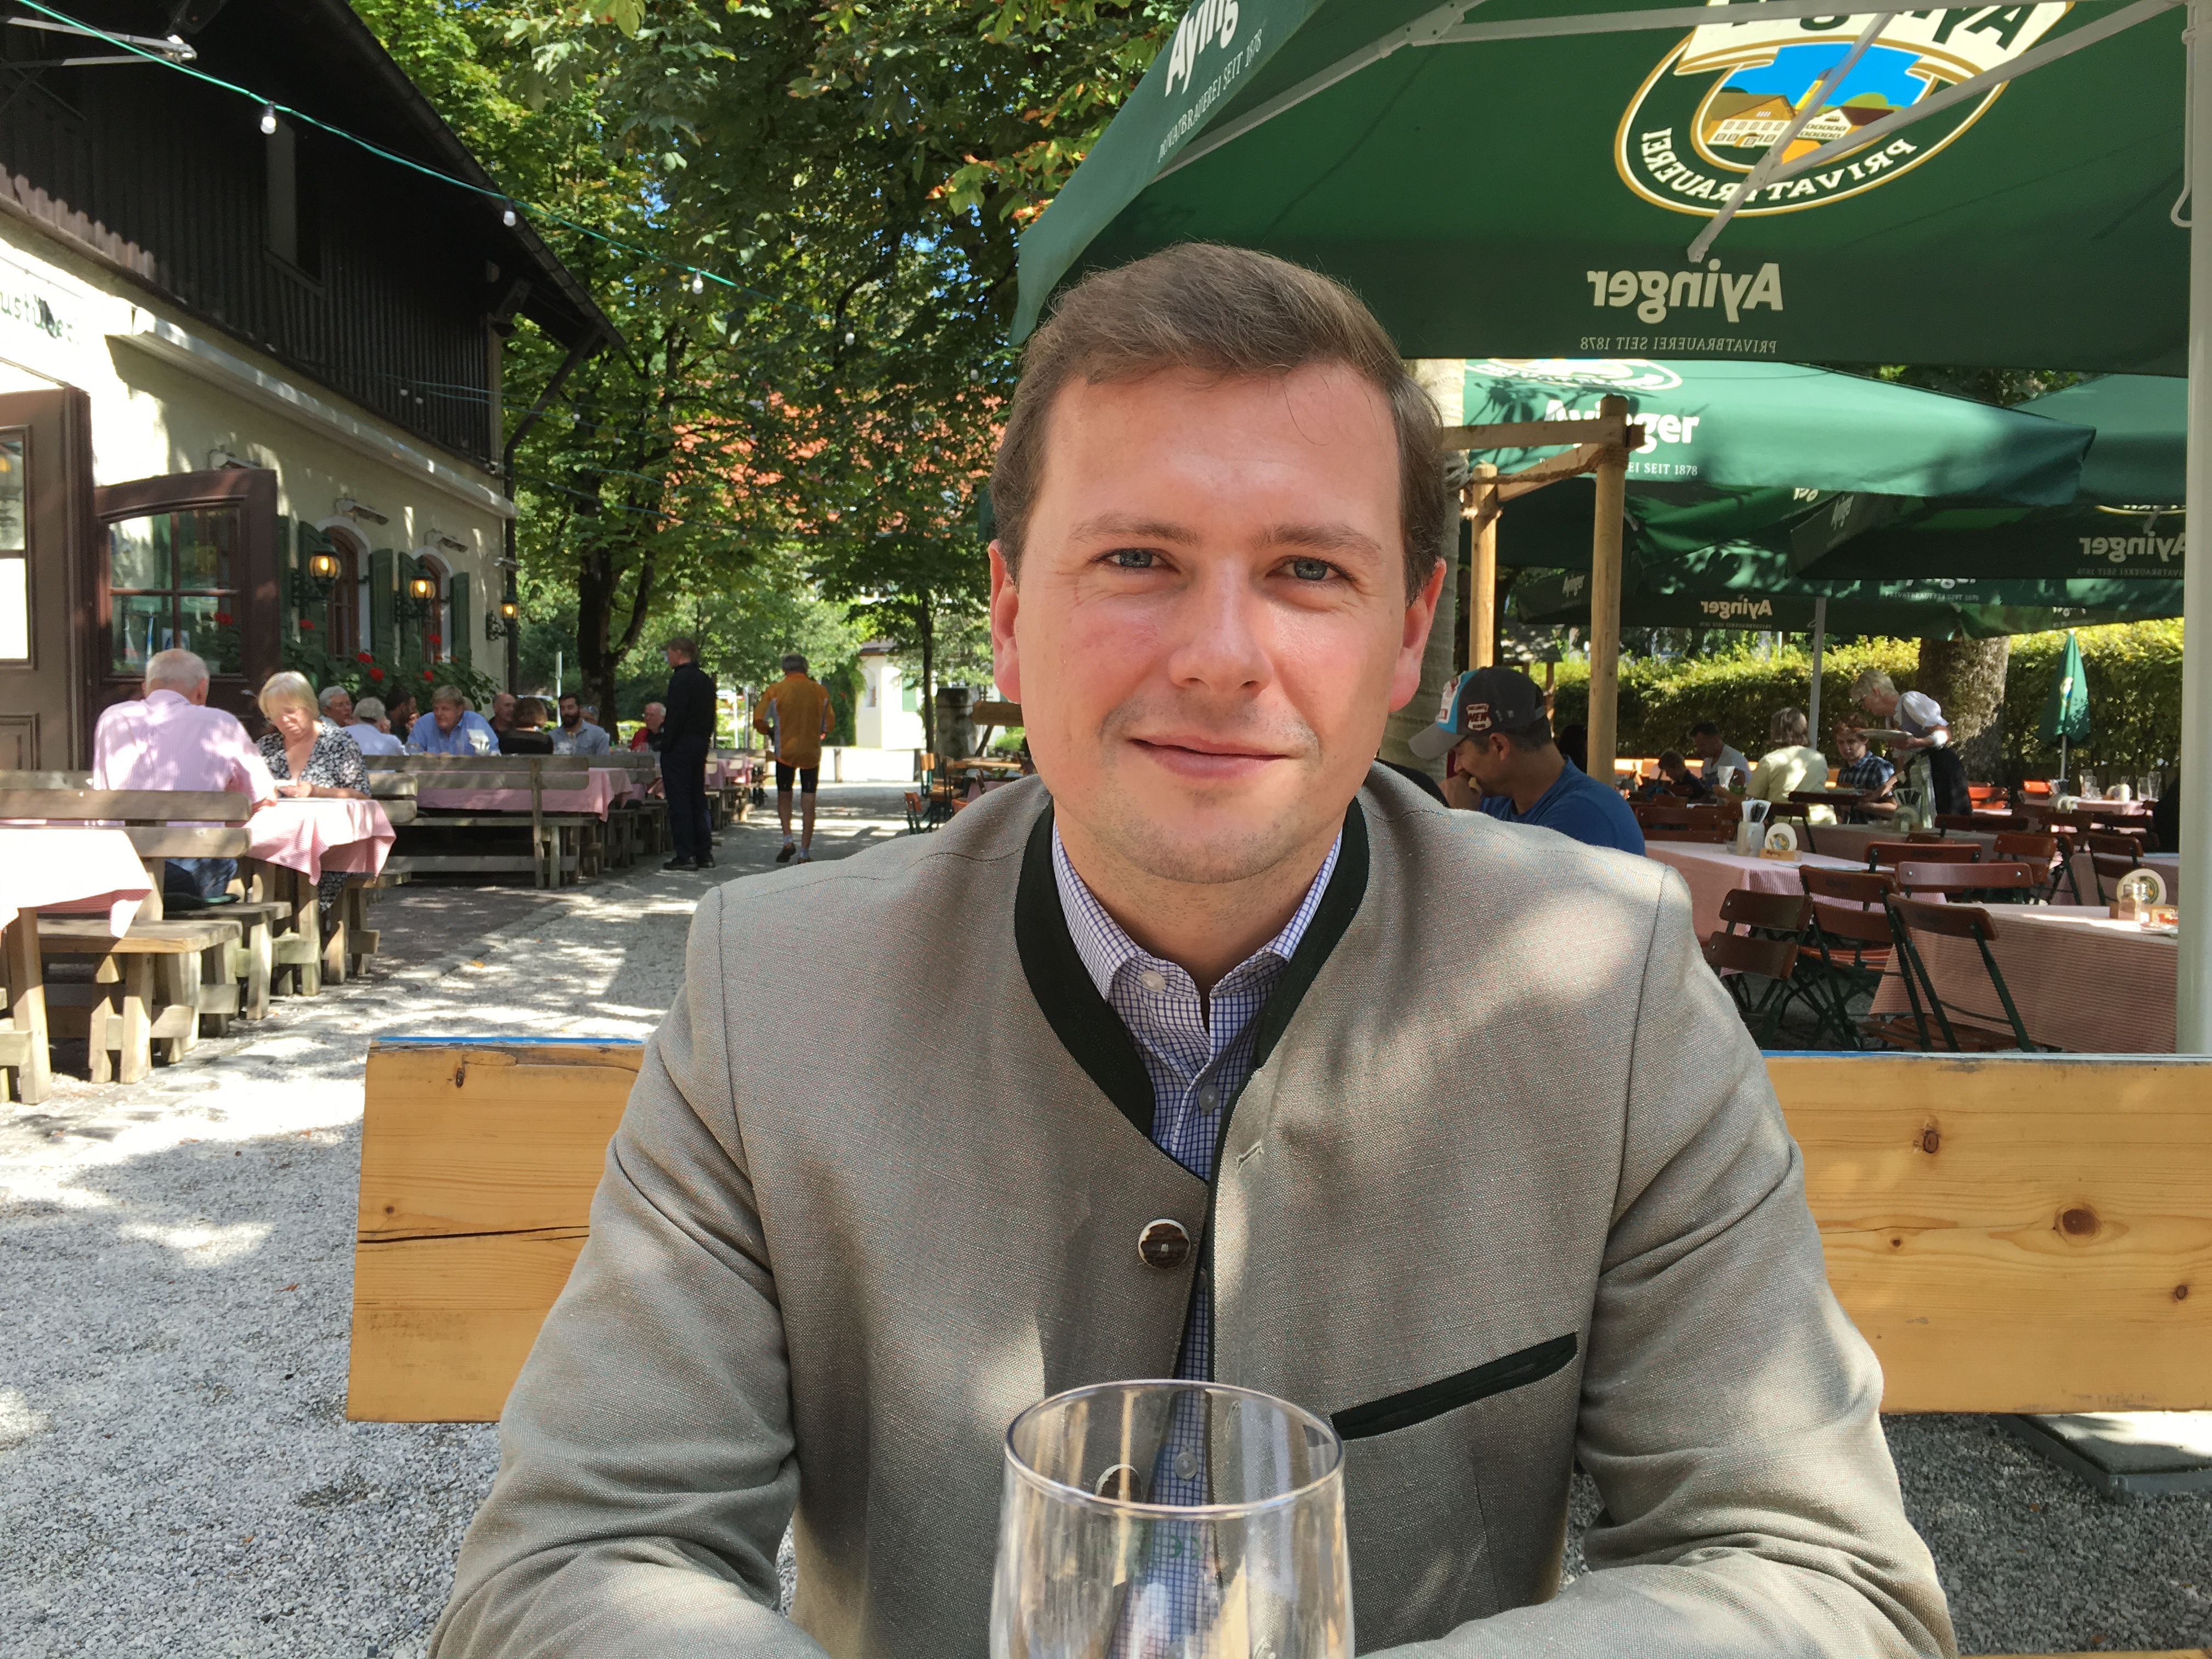 Having lunch with Franz Inselkammer III at Ayinger Braustuberl.